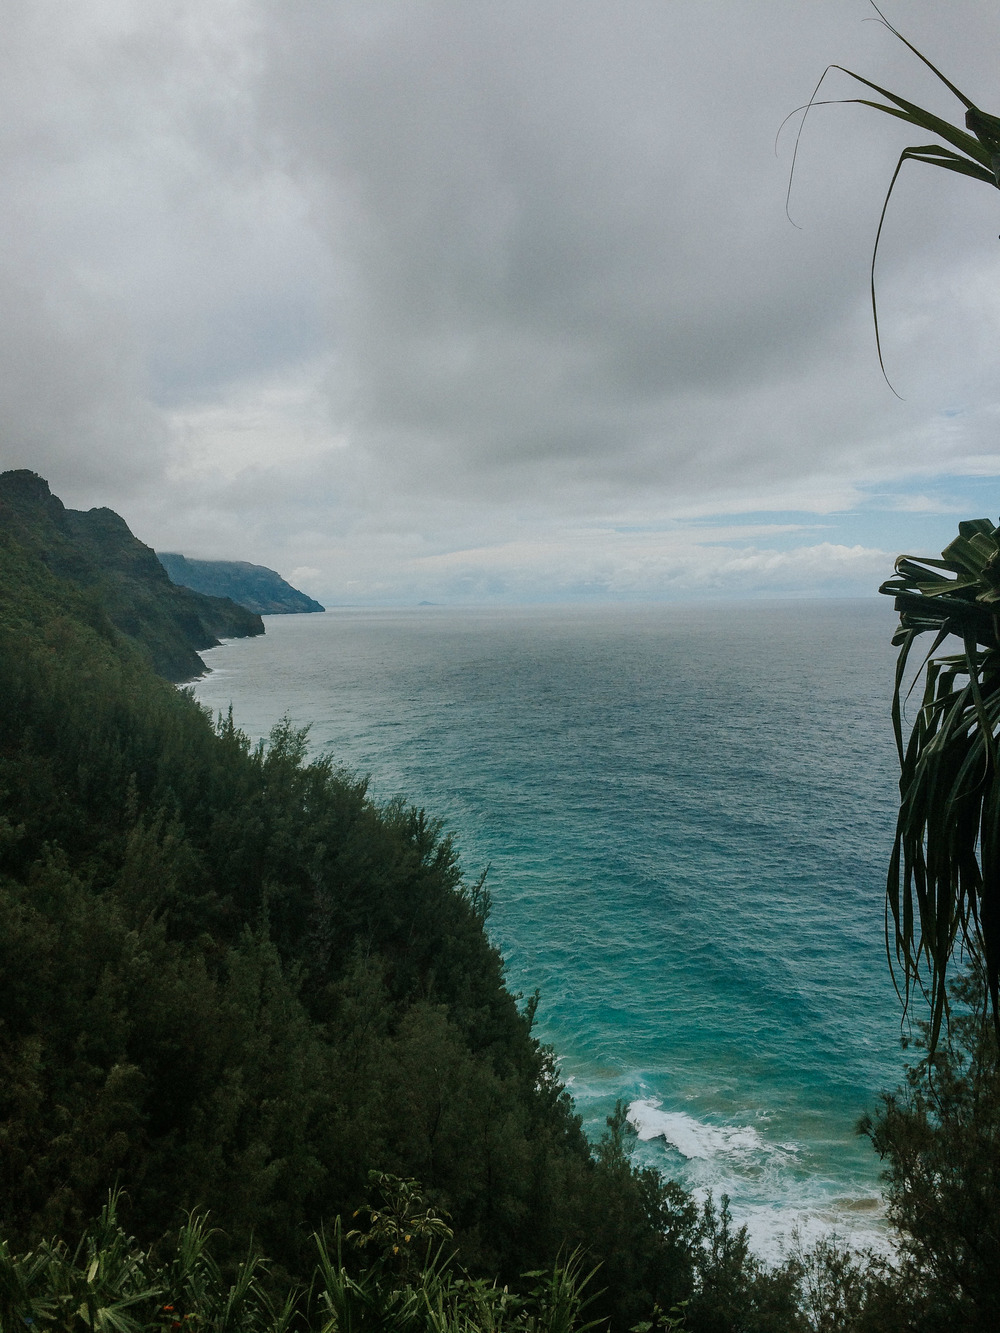 The NĀ Pali coast from the kalalau trail // kauai, hi